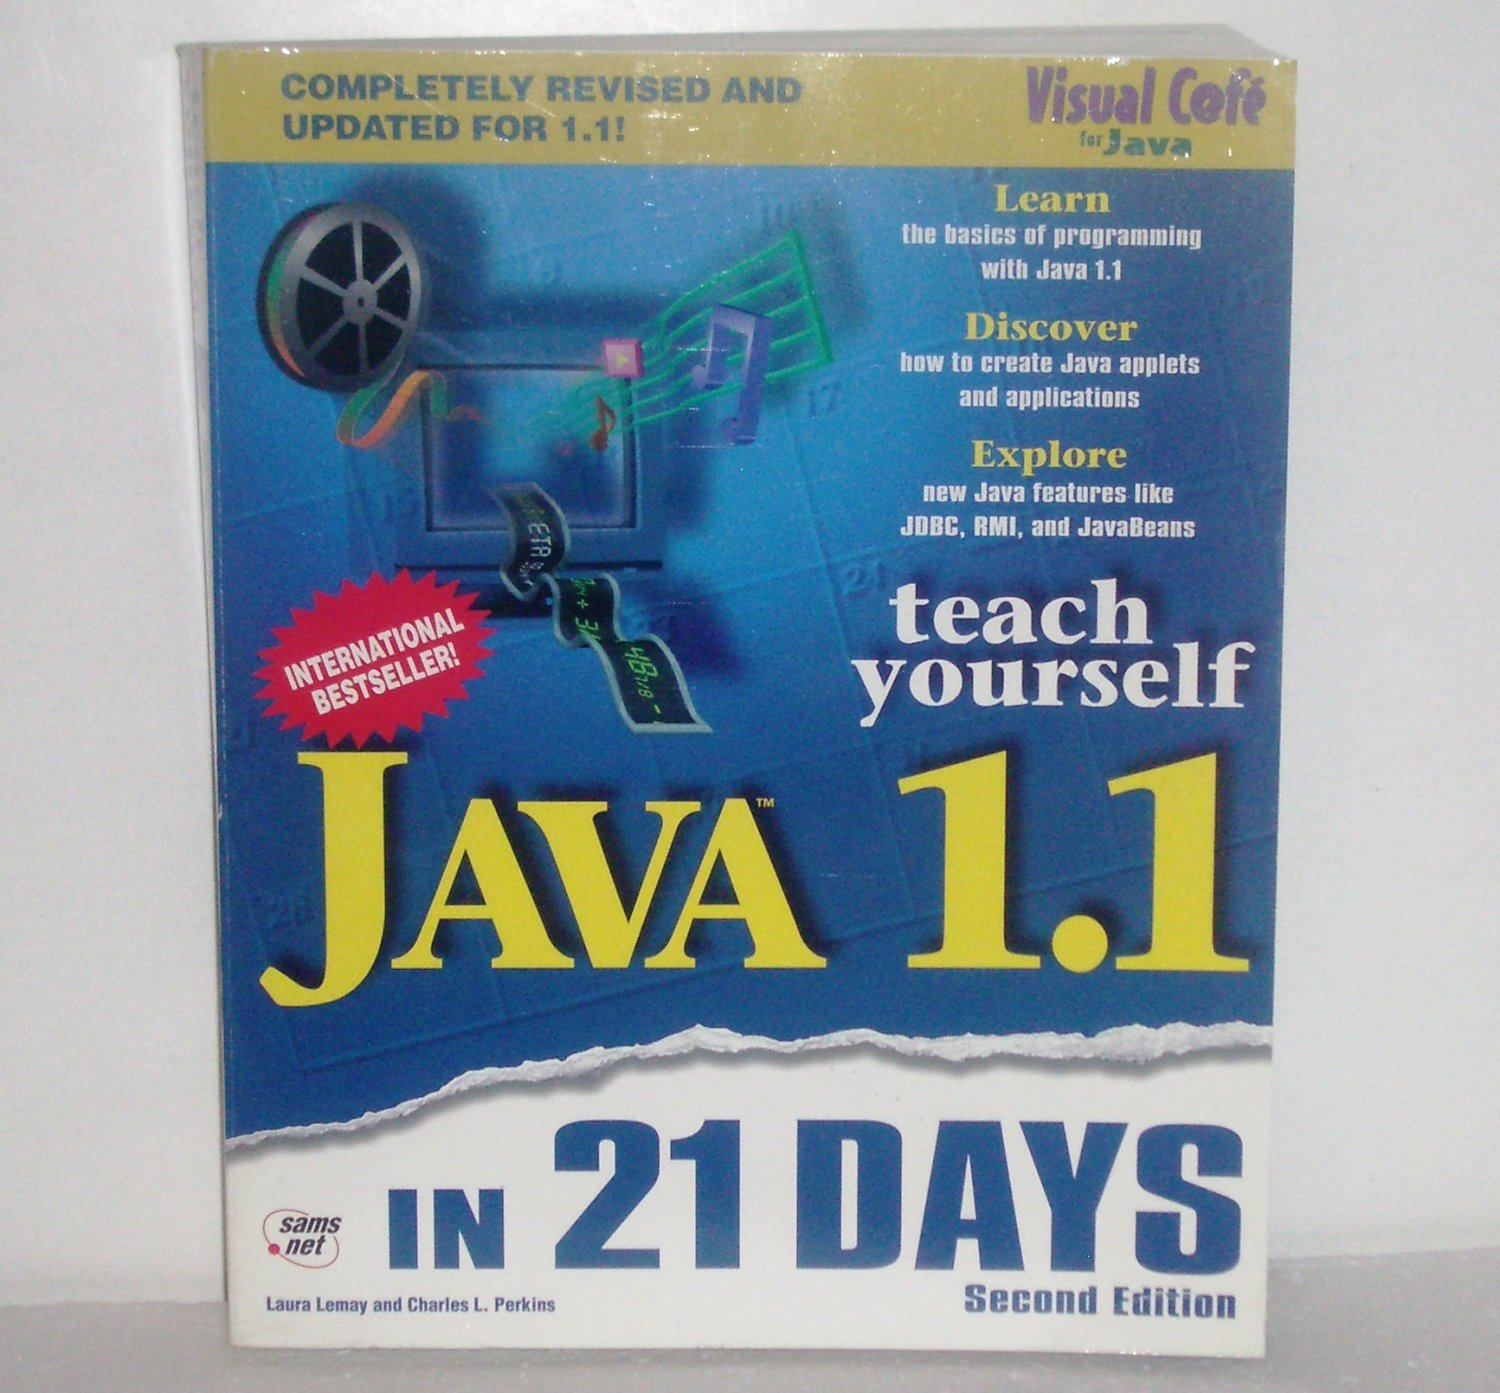 Sams Teach Yourself Java 1.1 in 21 Days by LAURA LEMAY, CHARLES L. PERKINS 1997